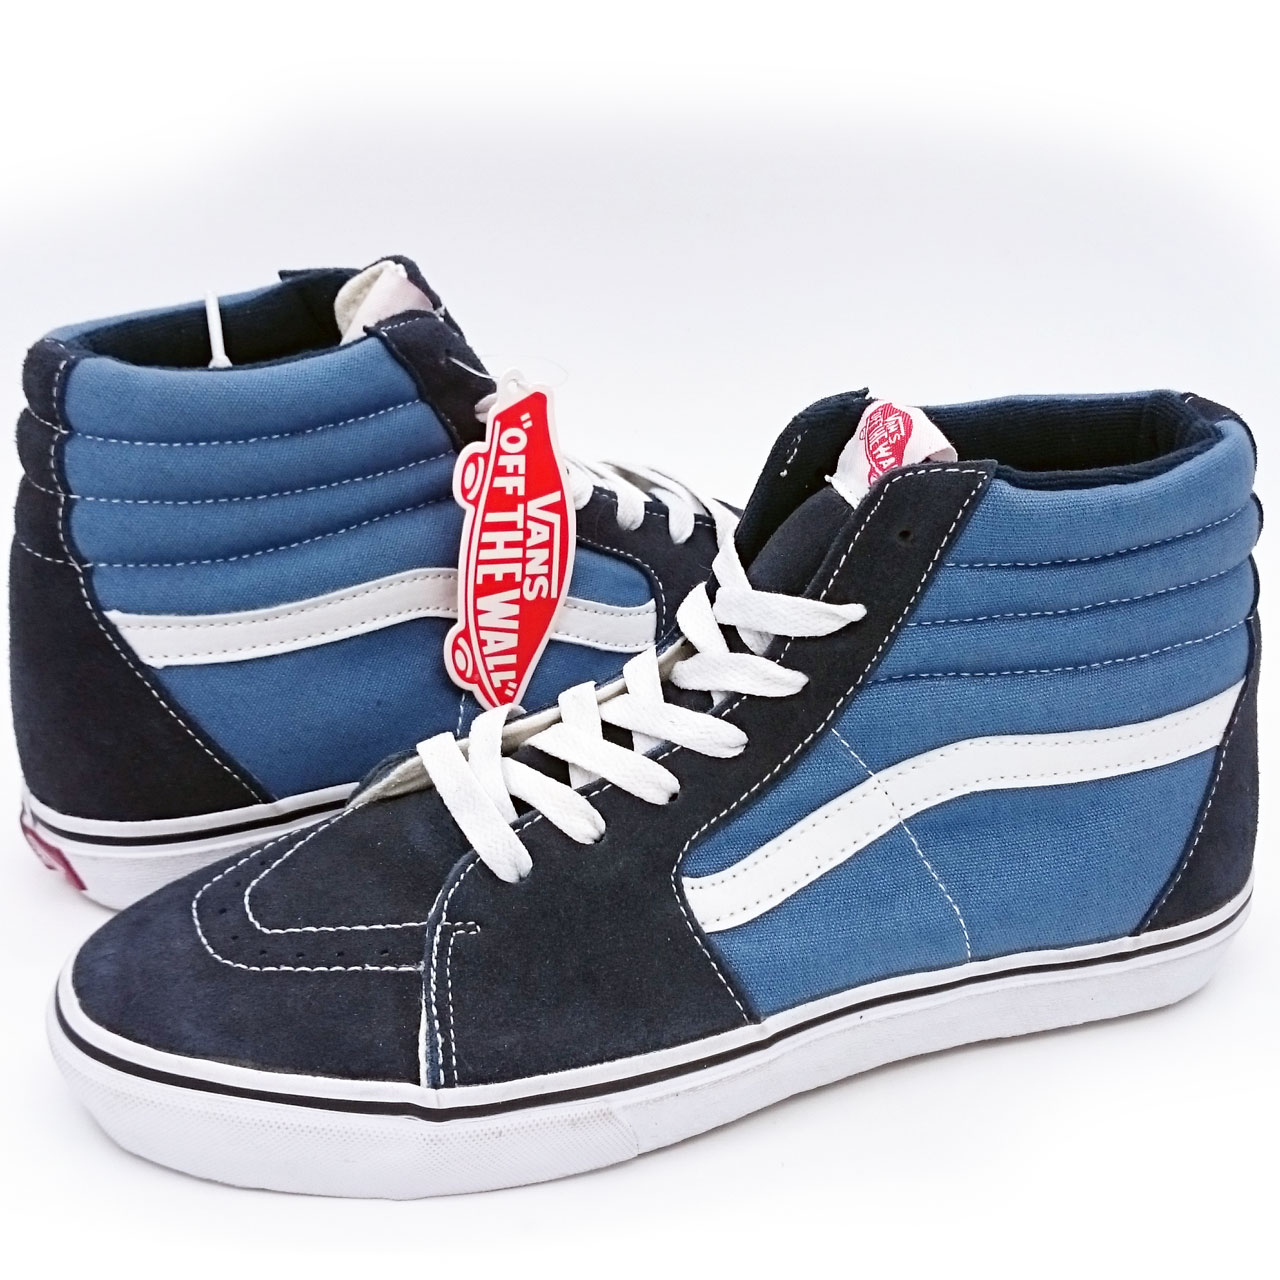 Vans Classic old skool Original Blue Gray 82482148eea24